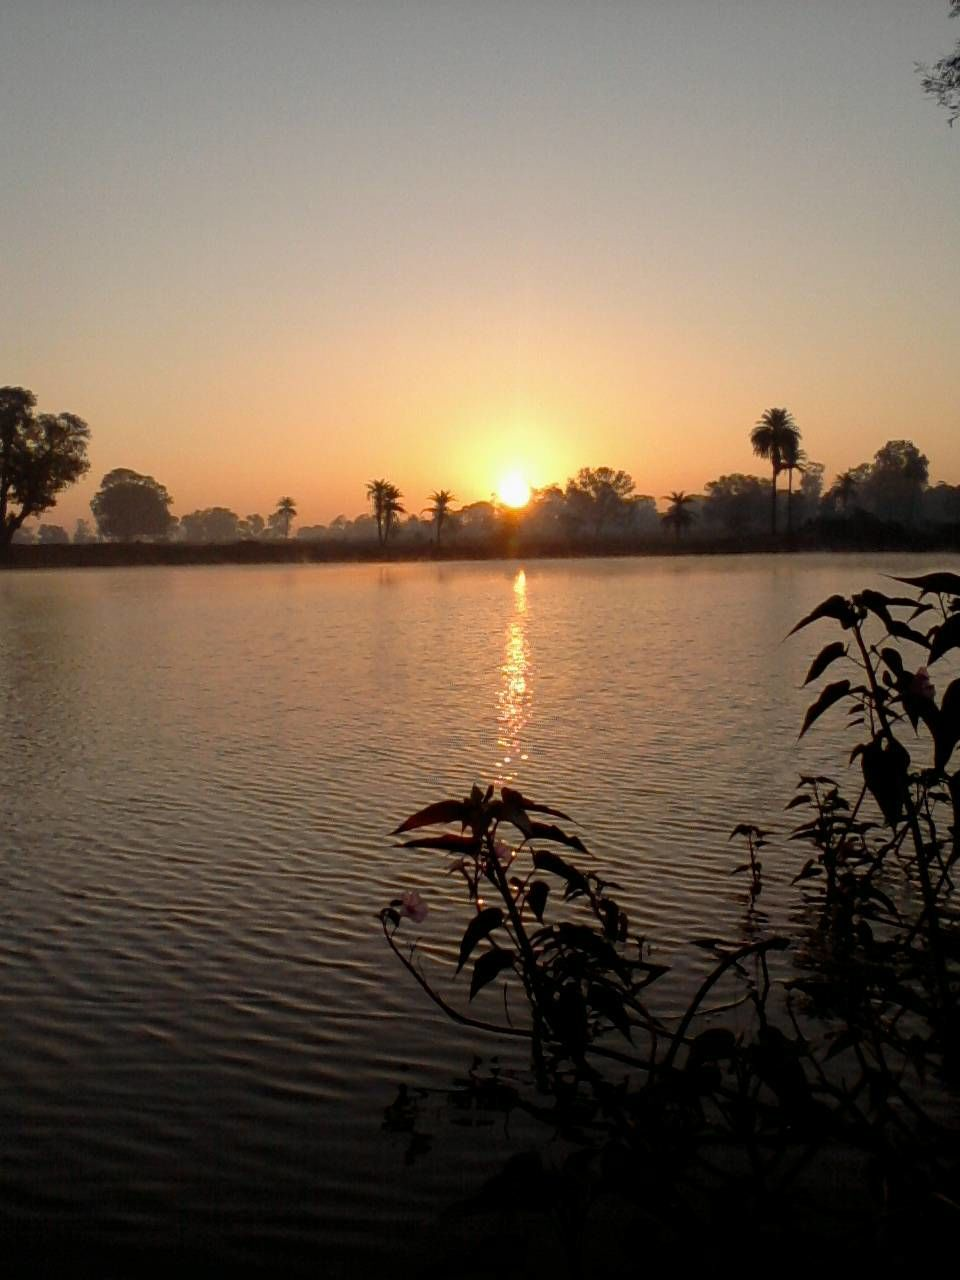 sunset, water, lake, nature, tranquil scene, tree, reflection, scenics, tranquility, beauty in nature, silhouette, outdoors, no people, sky, sun, sunlight, plant, clear sky, day